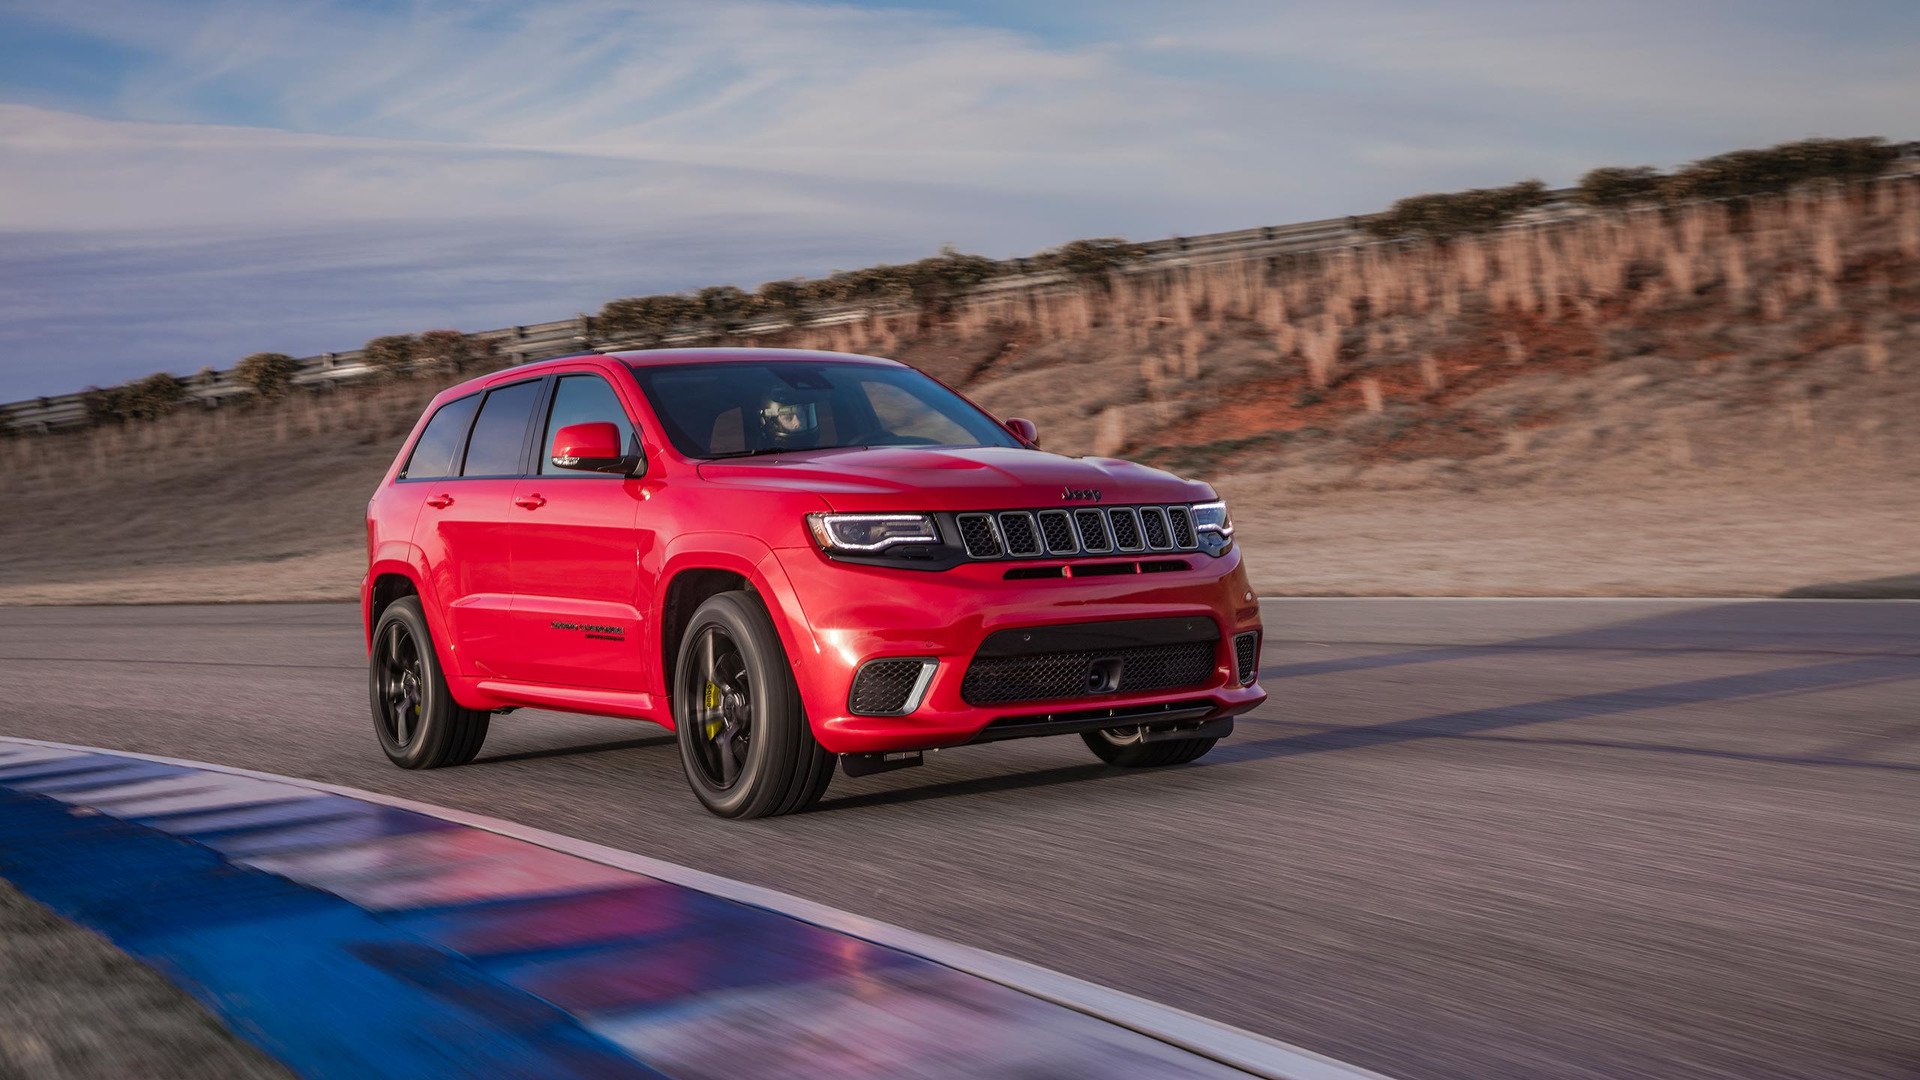 2018 jeep grand cherokee trackhawk 707 hp suv image 642219. Cars Review. Best American Auto & Cars Review